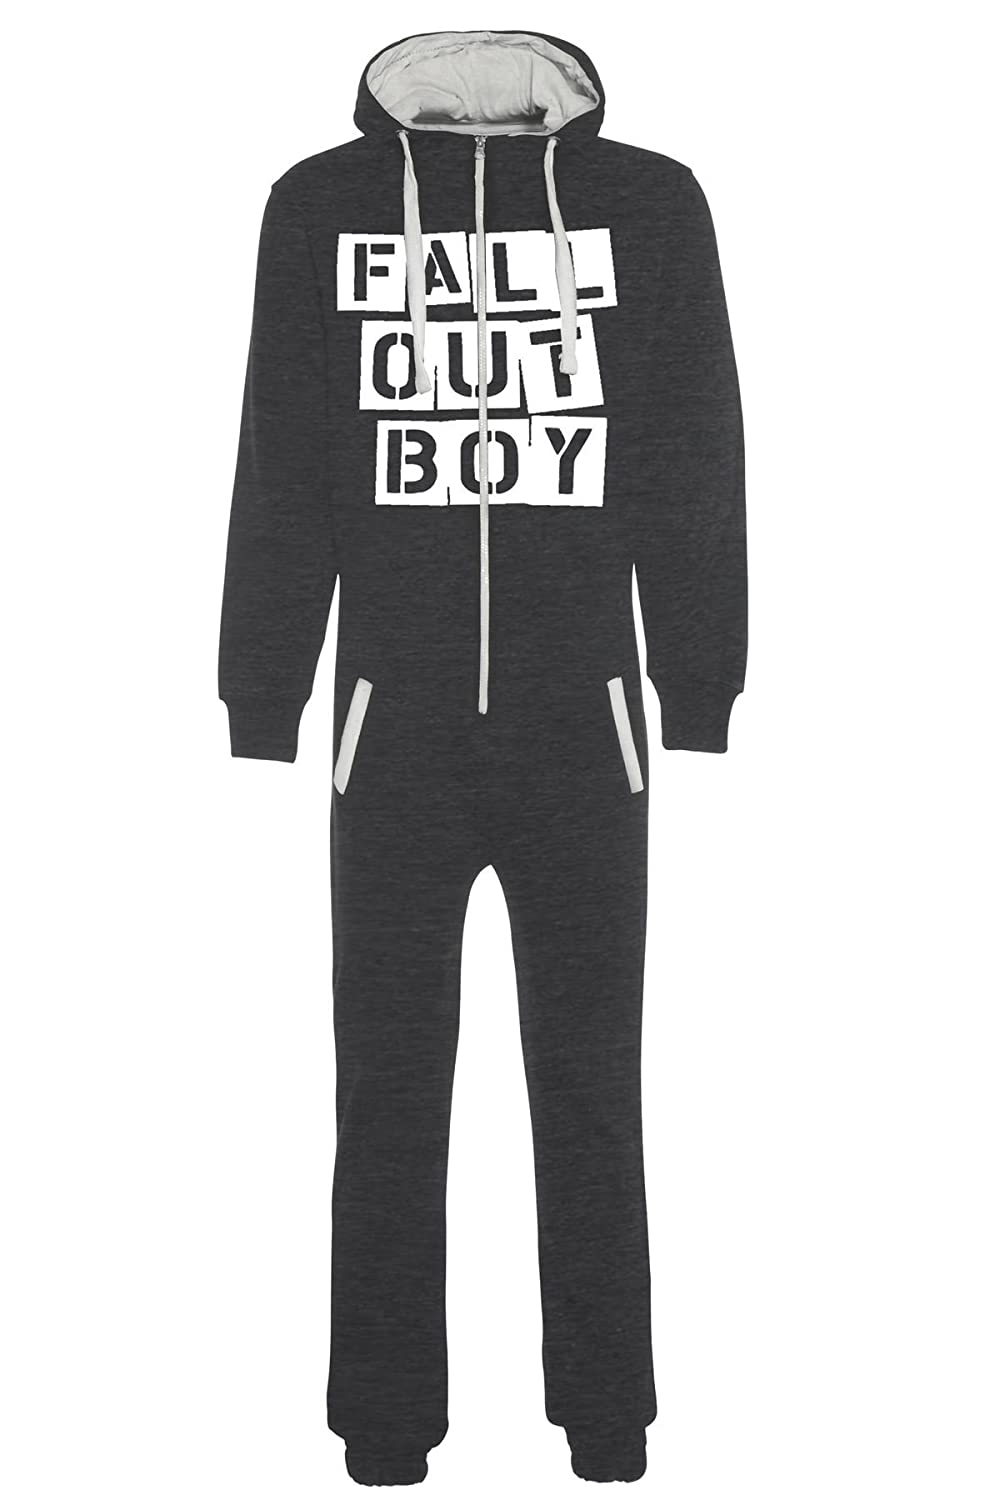 aejays Unisex Fall Out Boy Printed Onsie Color Charcoal Size L